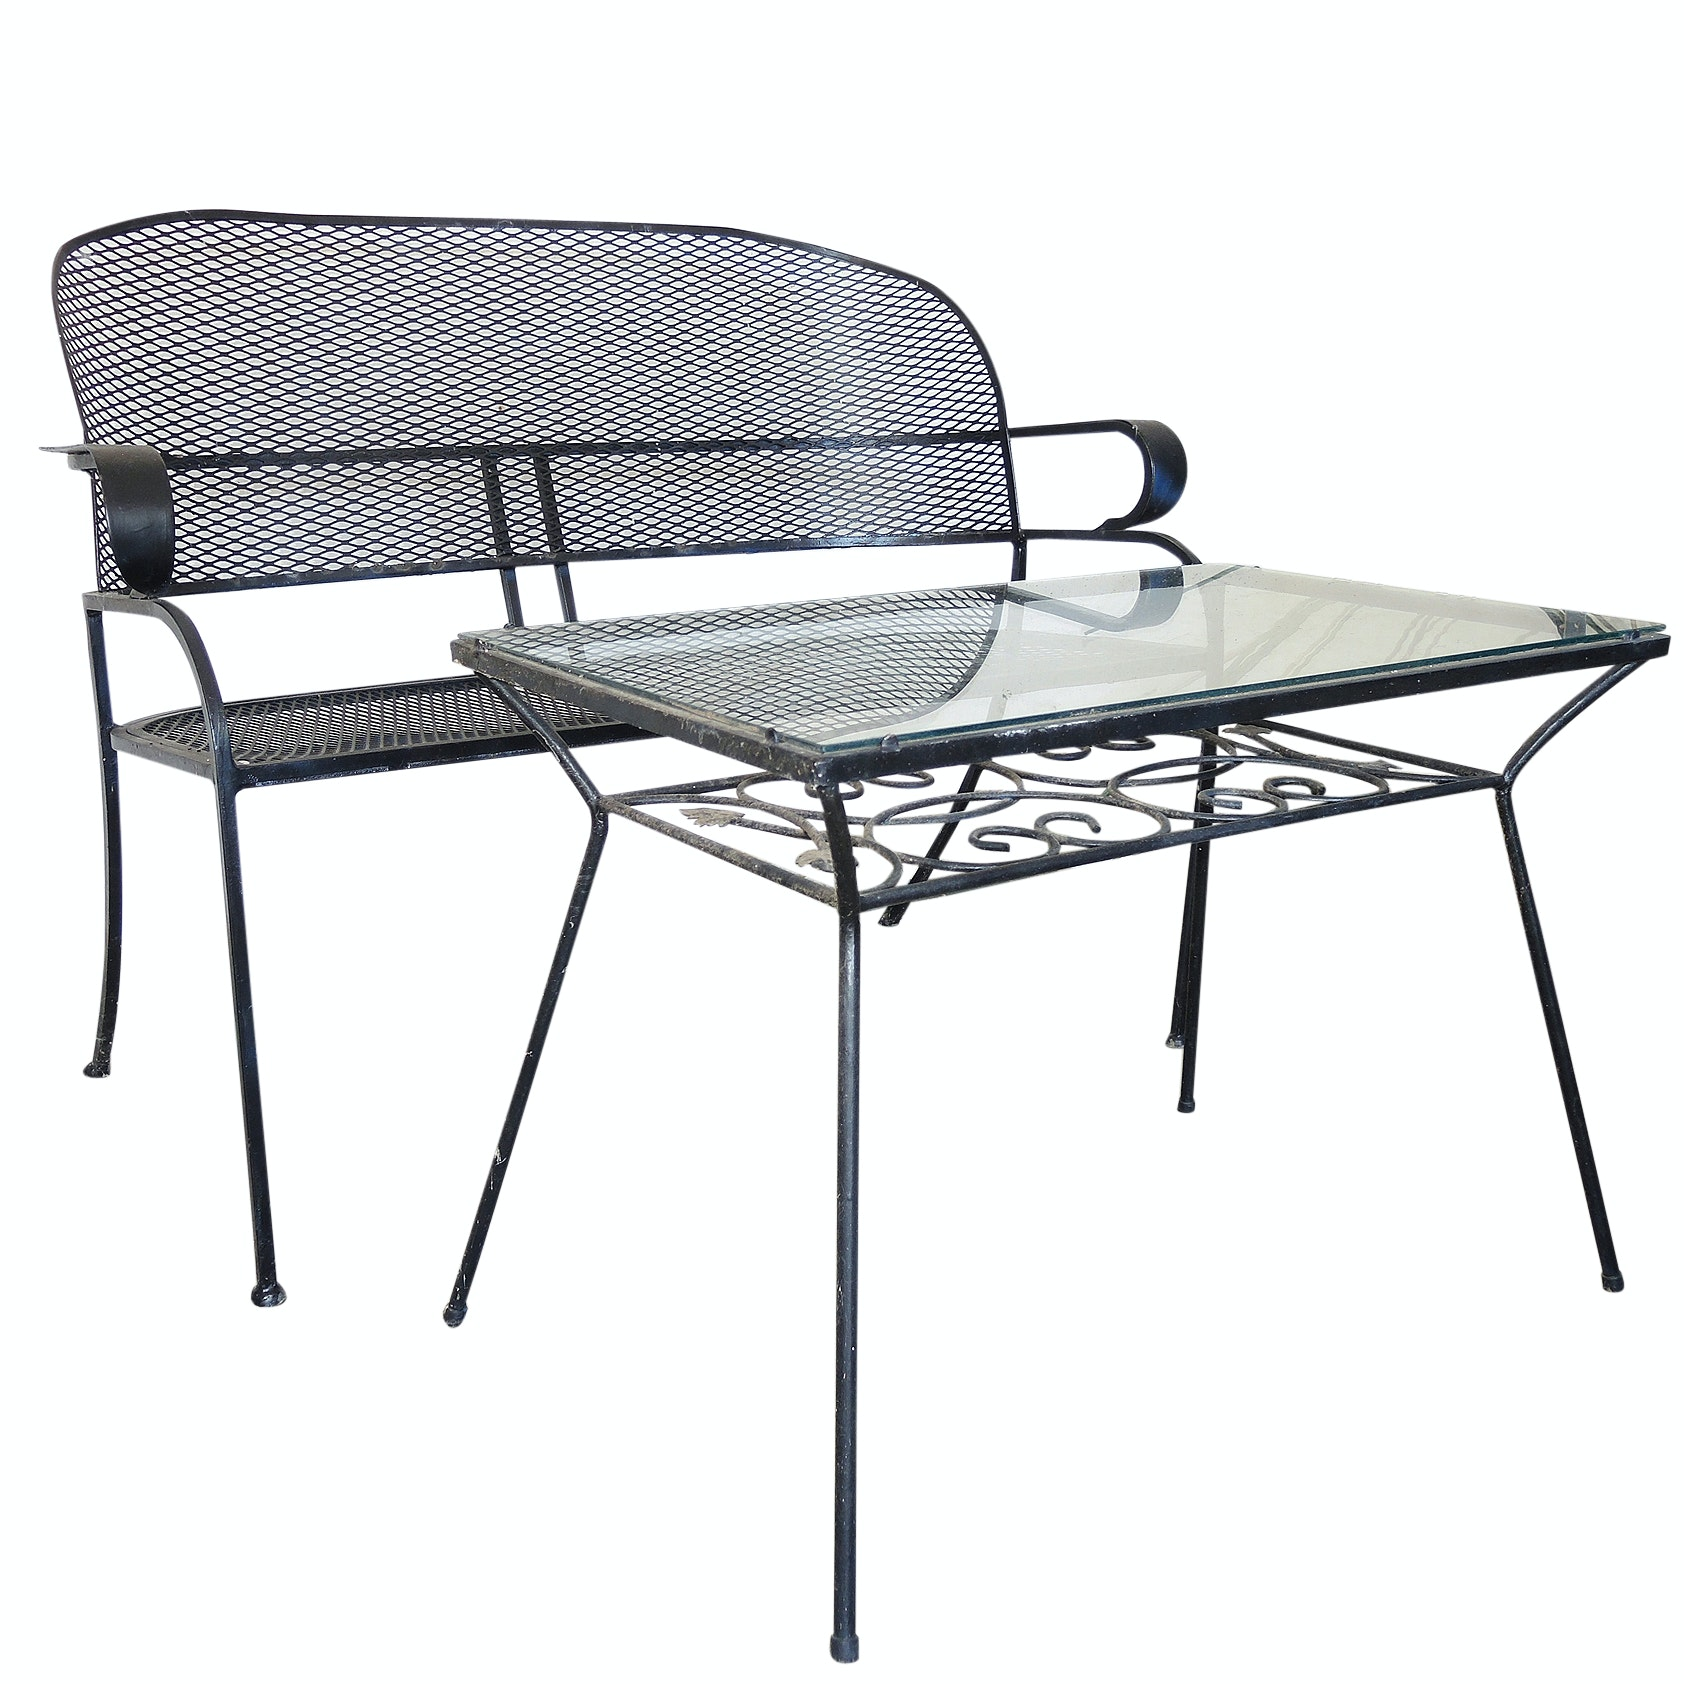 Wrought Iron Patio Loveseat with Cushions and Table